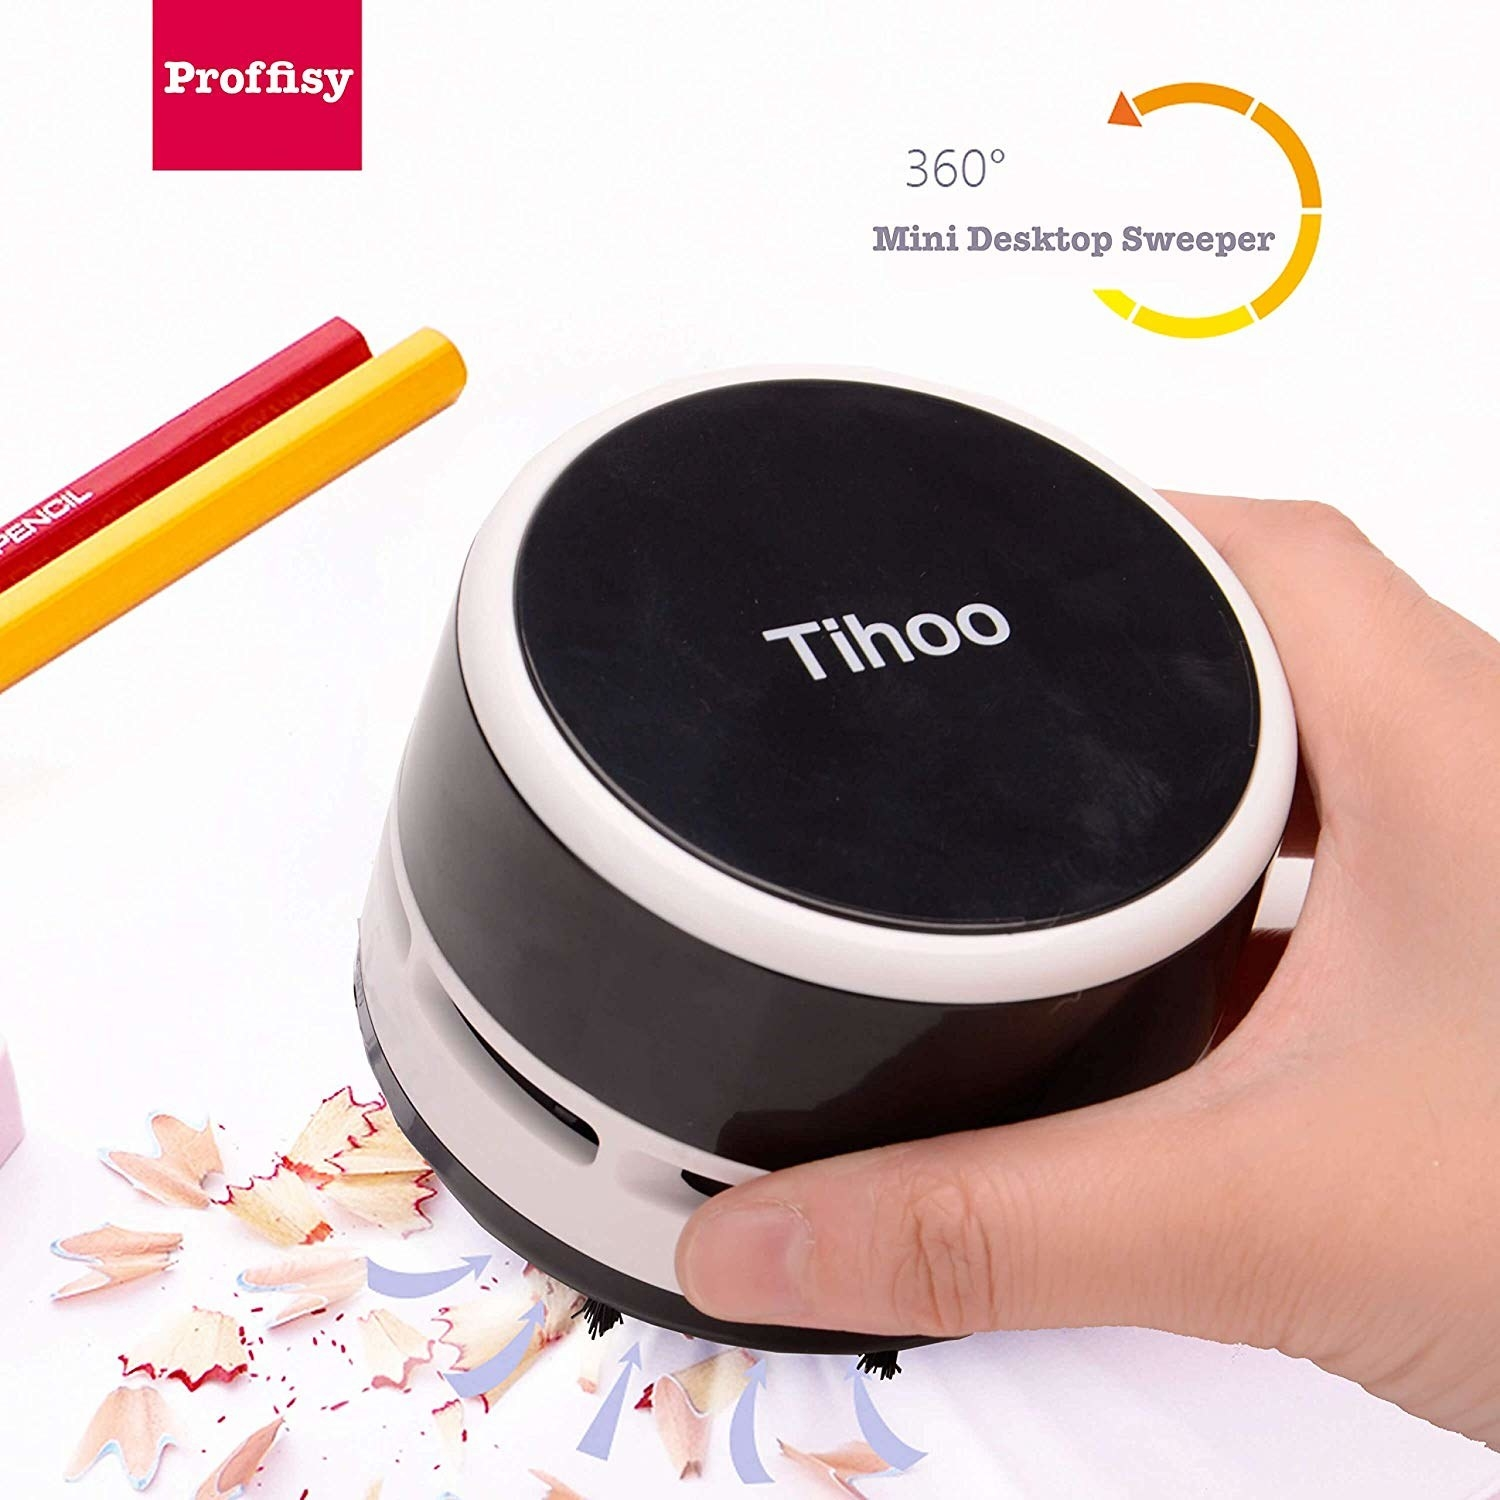 Pencil shavings being vaccuumed off a desk with a black desk vaccuum